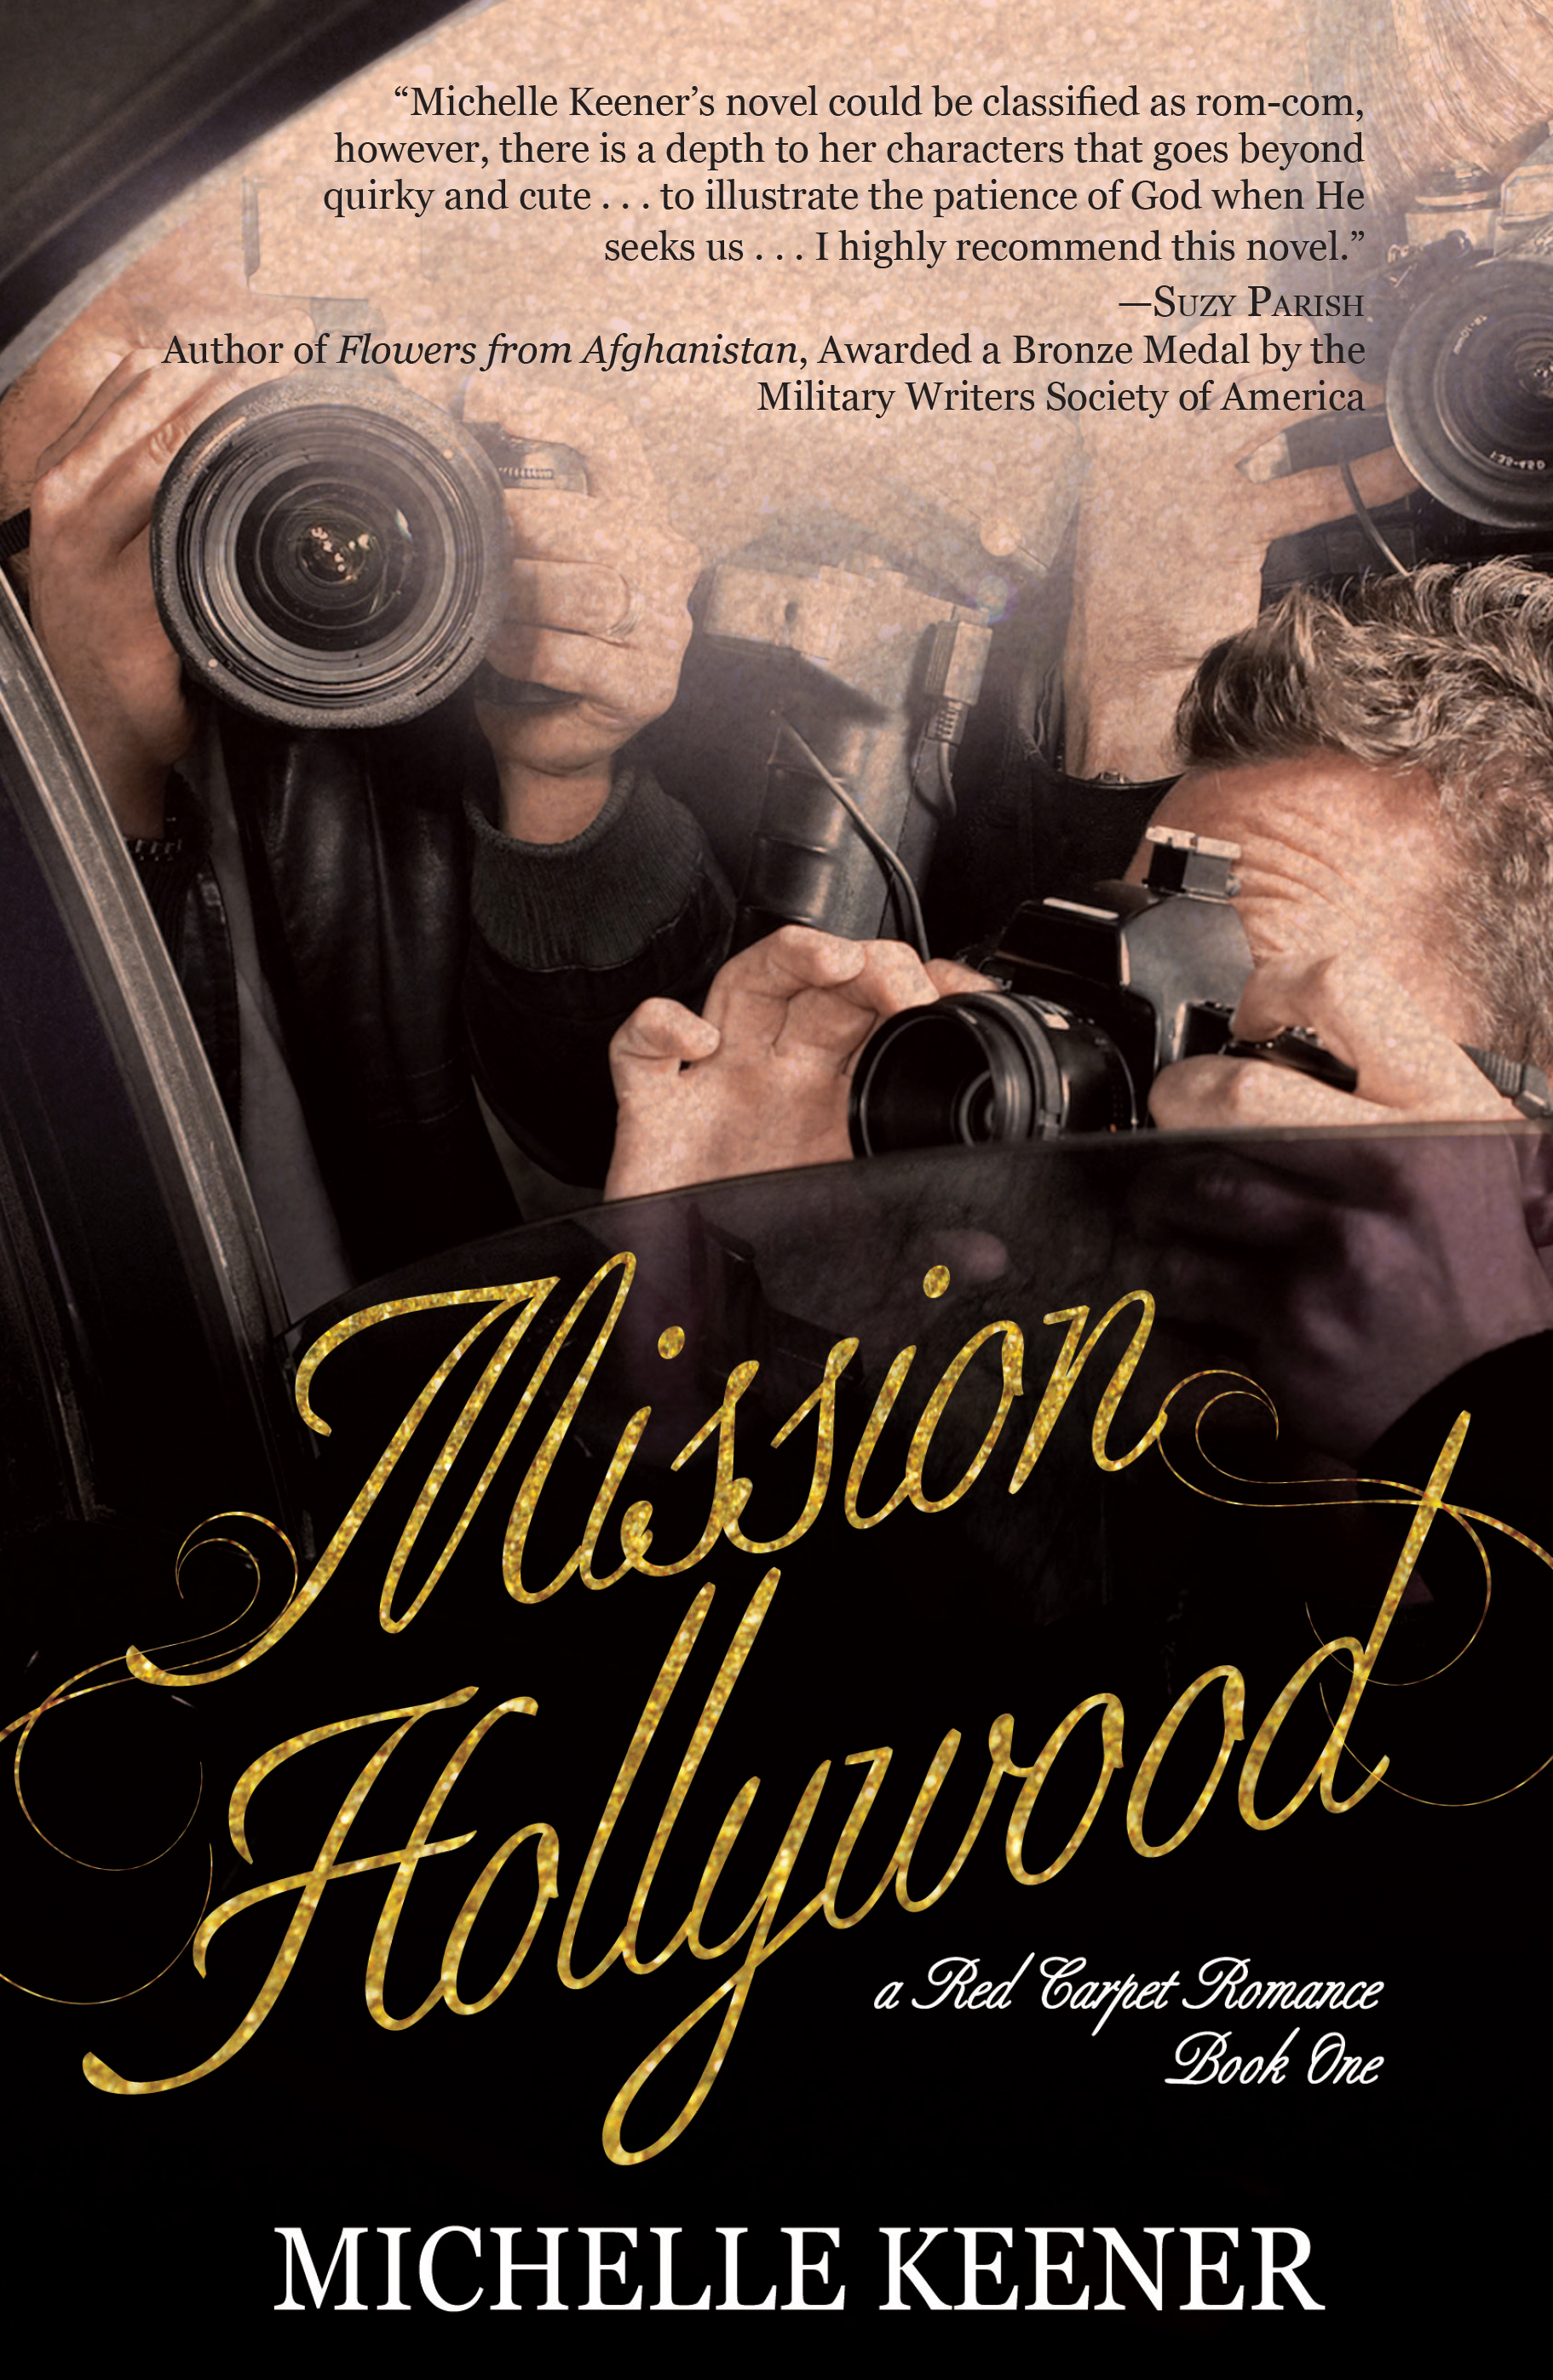 Mission Hollywood by Michelle Keener